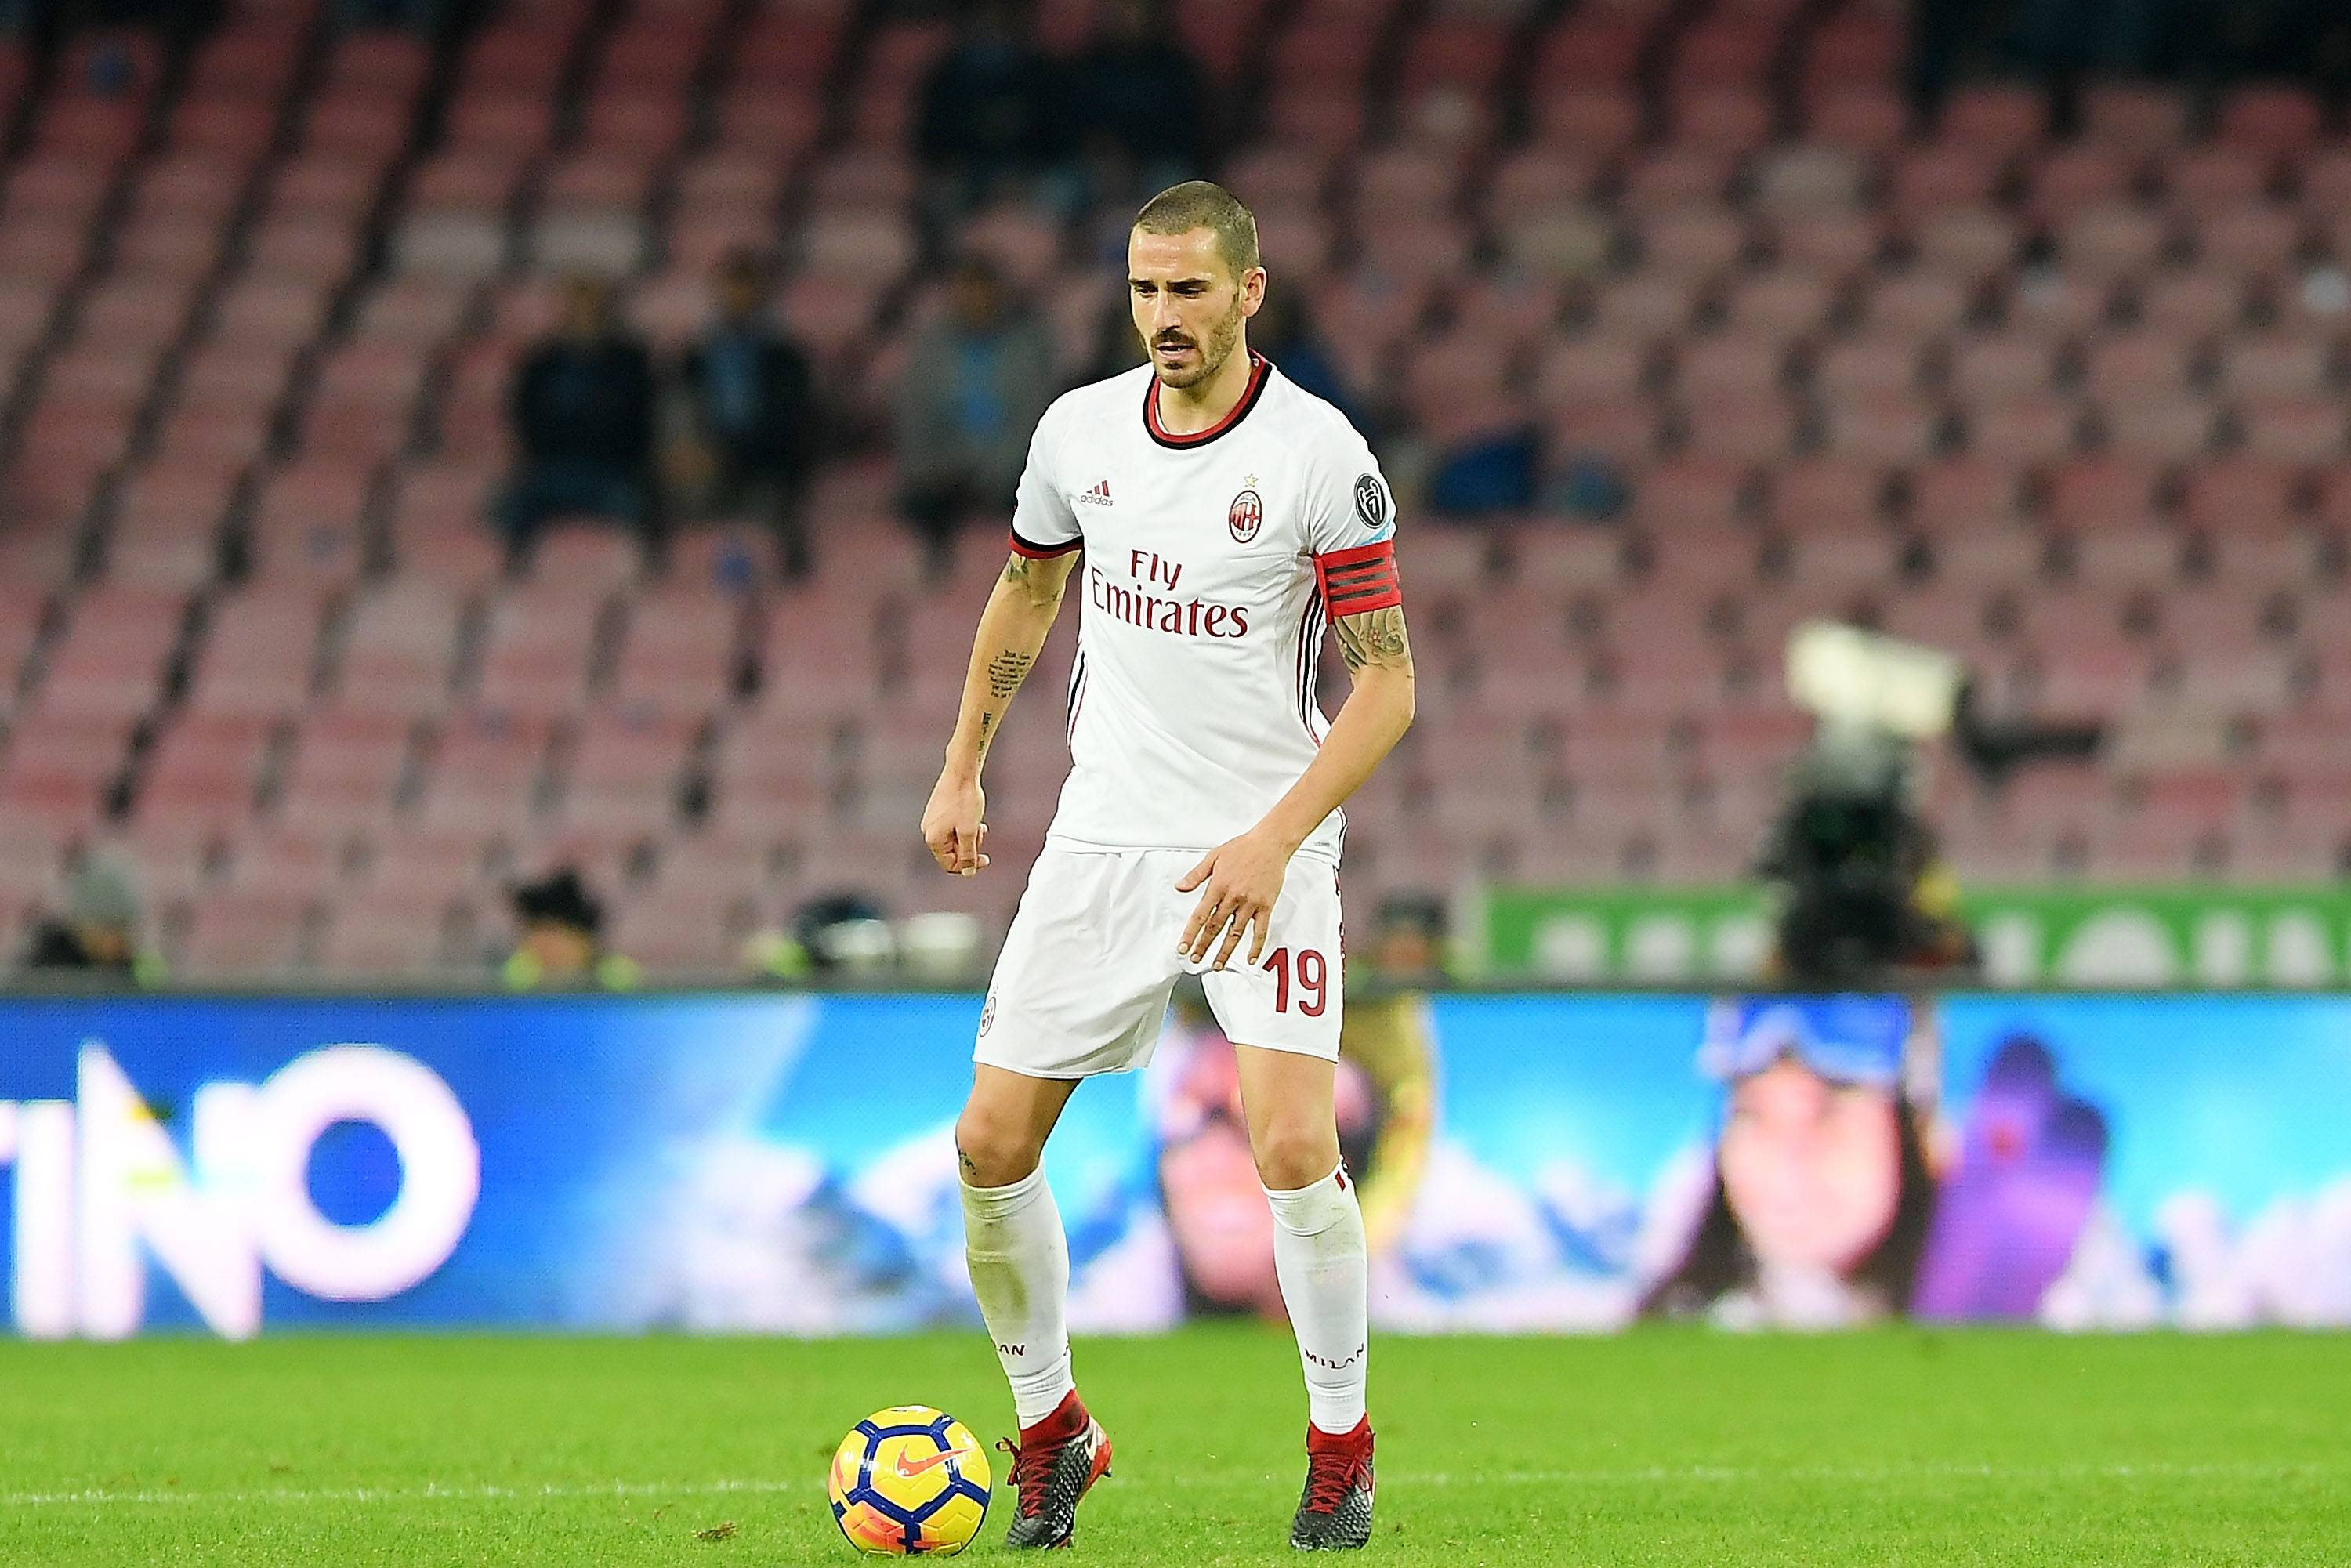 Leonardo Bonucci, addio al Milan? L'interesse del Real Madrid